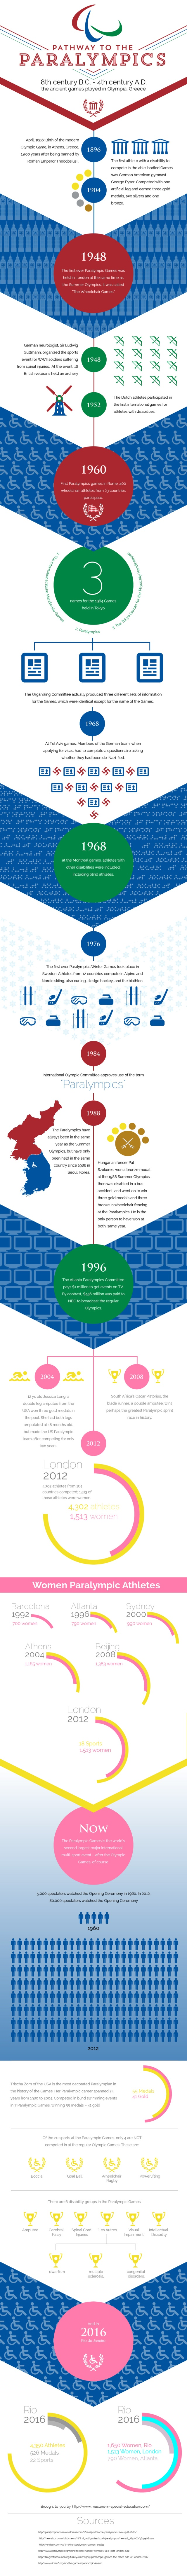 History of Paralympics Infographic